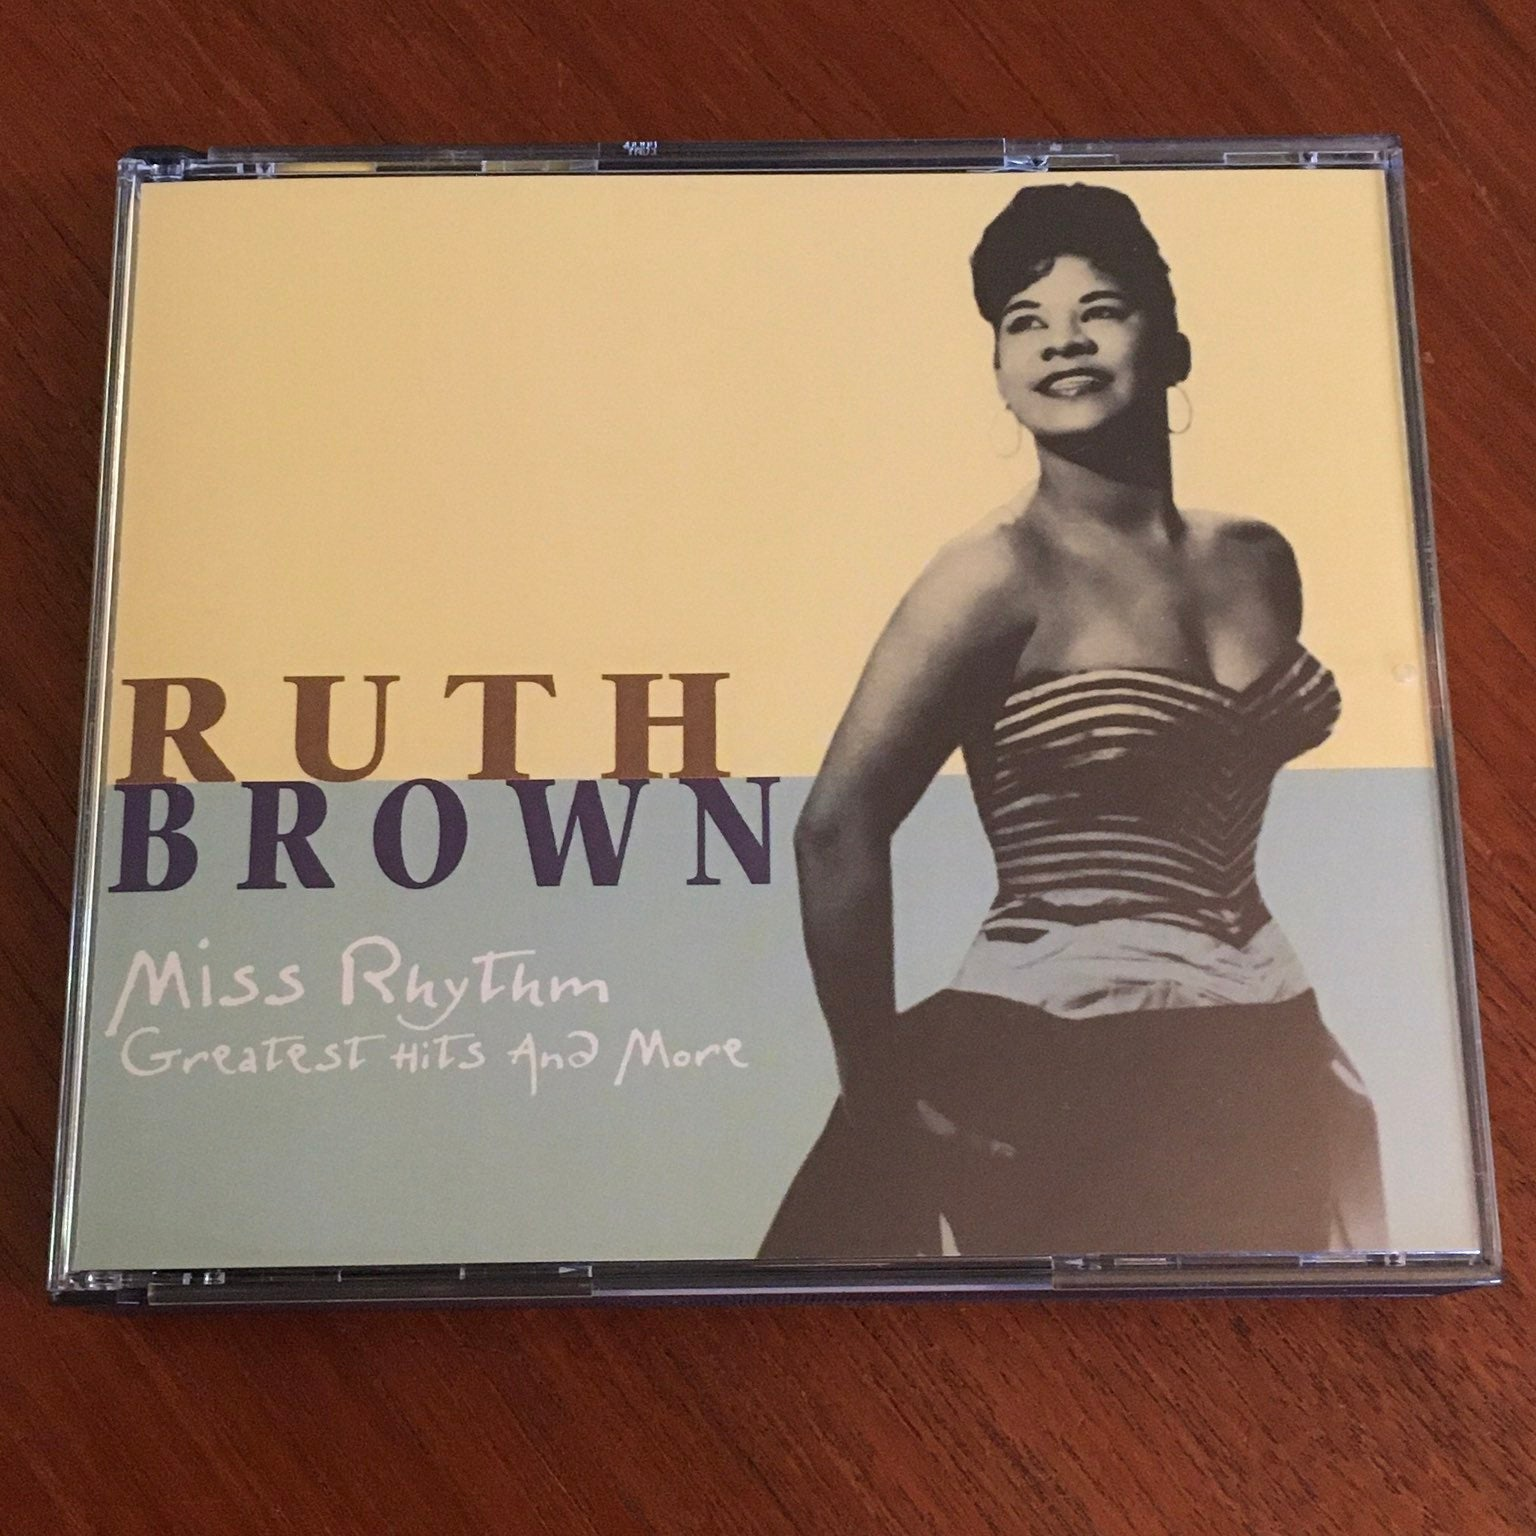 Ruth Brown Miss Rhythm 2-CD Set